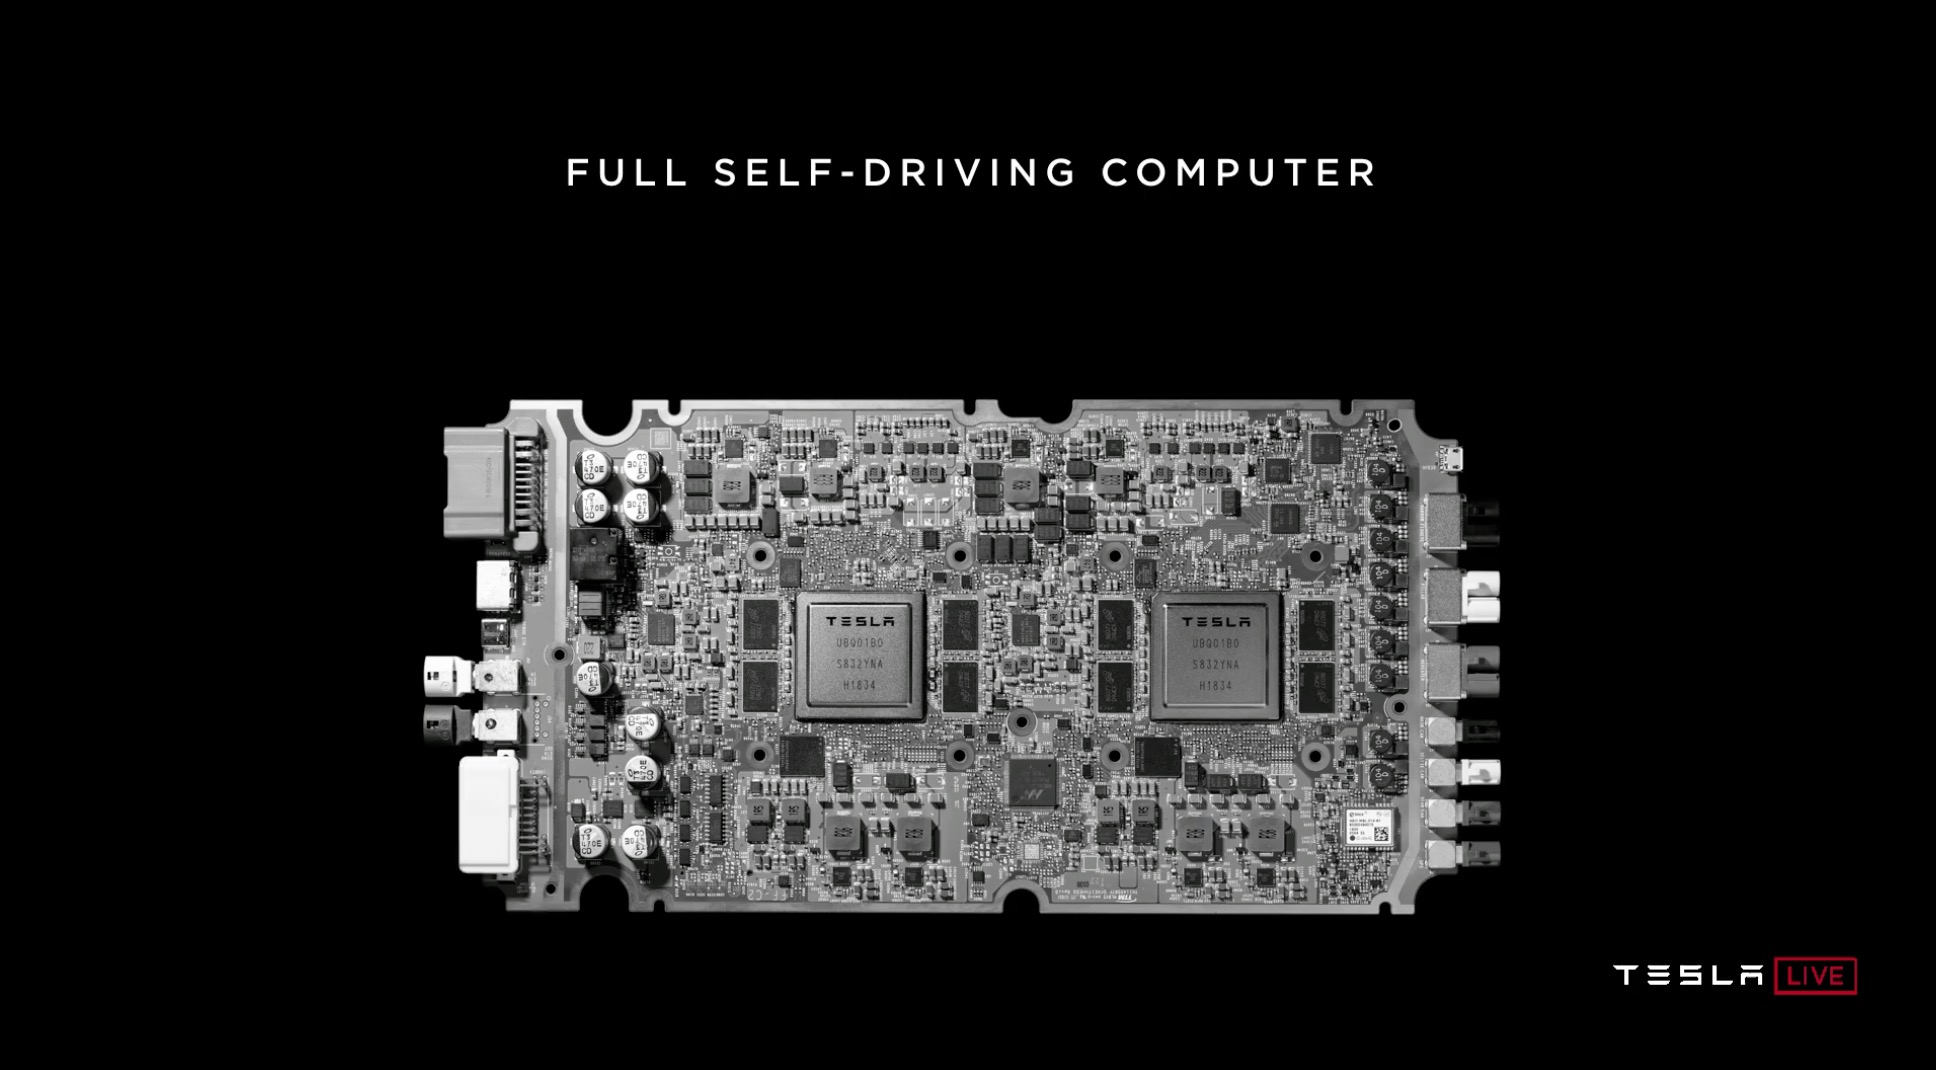 Tesla unveils its new Full Self-Driving computer in detail: 'objectively  the best chip in the world' - Electrek